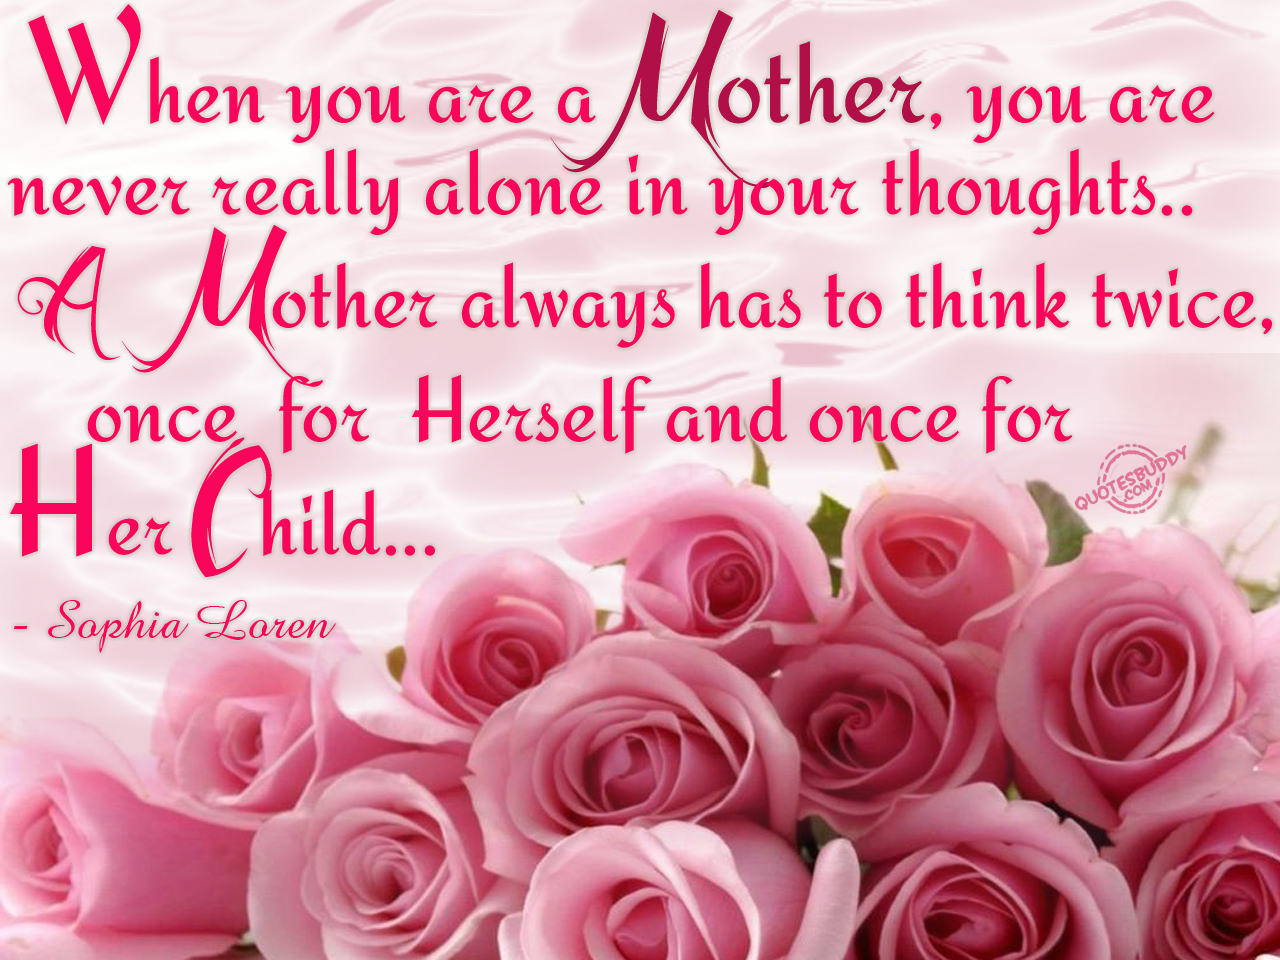 When You Are a Mother, You Are Never Really Alone In Your Thoughts. A Mother Always Has To Think Twice. Once For Herself And Once For Her Child